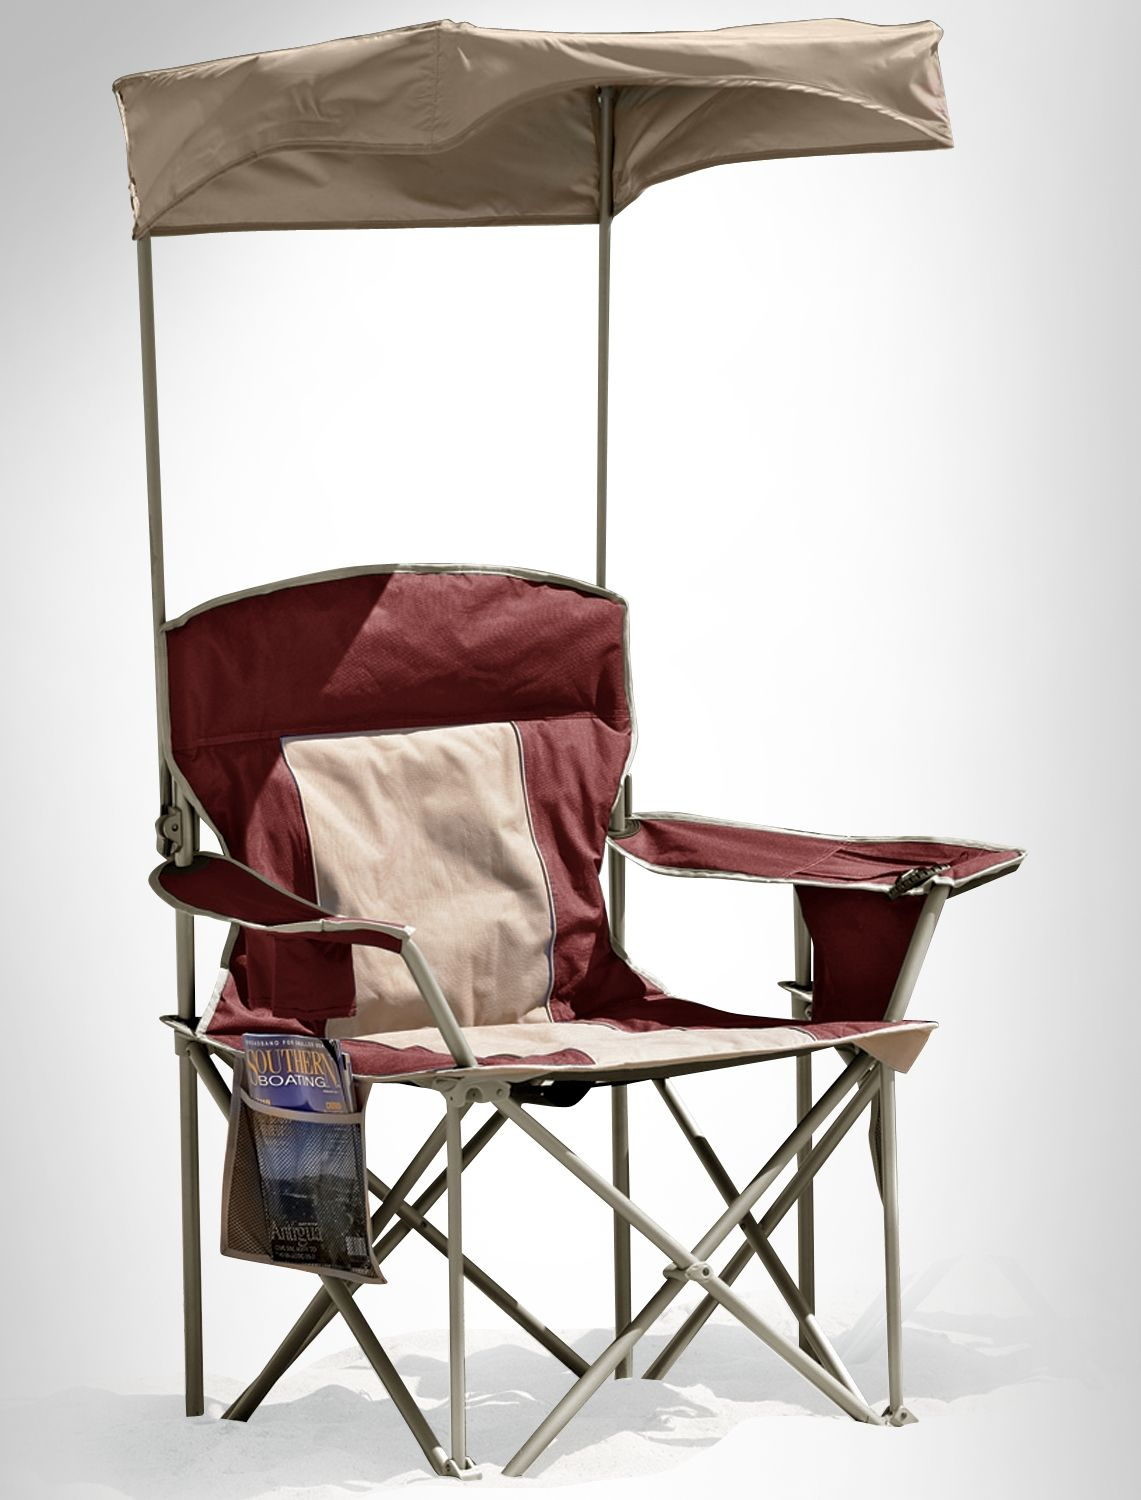 Best Adjustable Canopy For Heavy Duty Portable Chairs 400 x 300